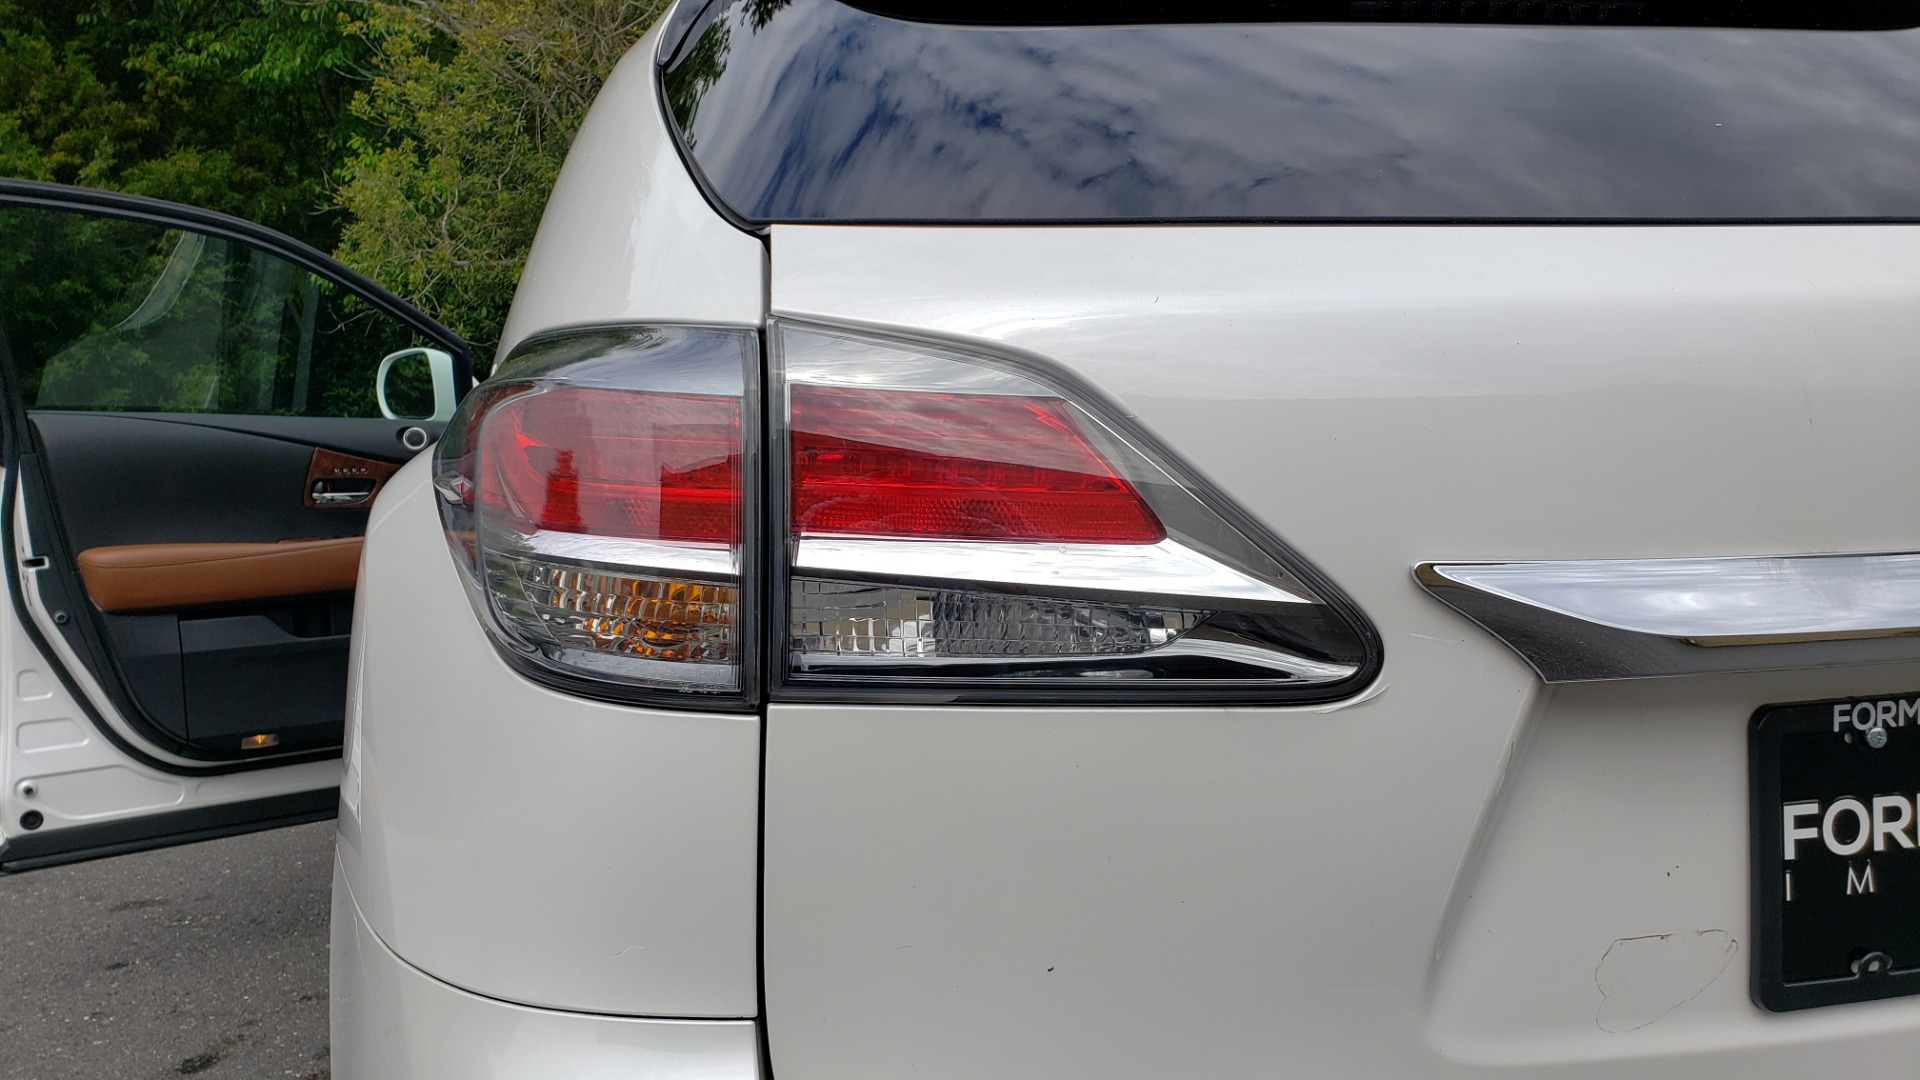 Used 2013 Lexus RX 350 PREMIUM PKG / SUNROOF / BSM / PARK ASST / REARVIEW for sale Sold at Formula Imports in Charlotte NC 28227 28